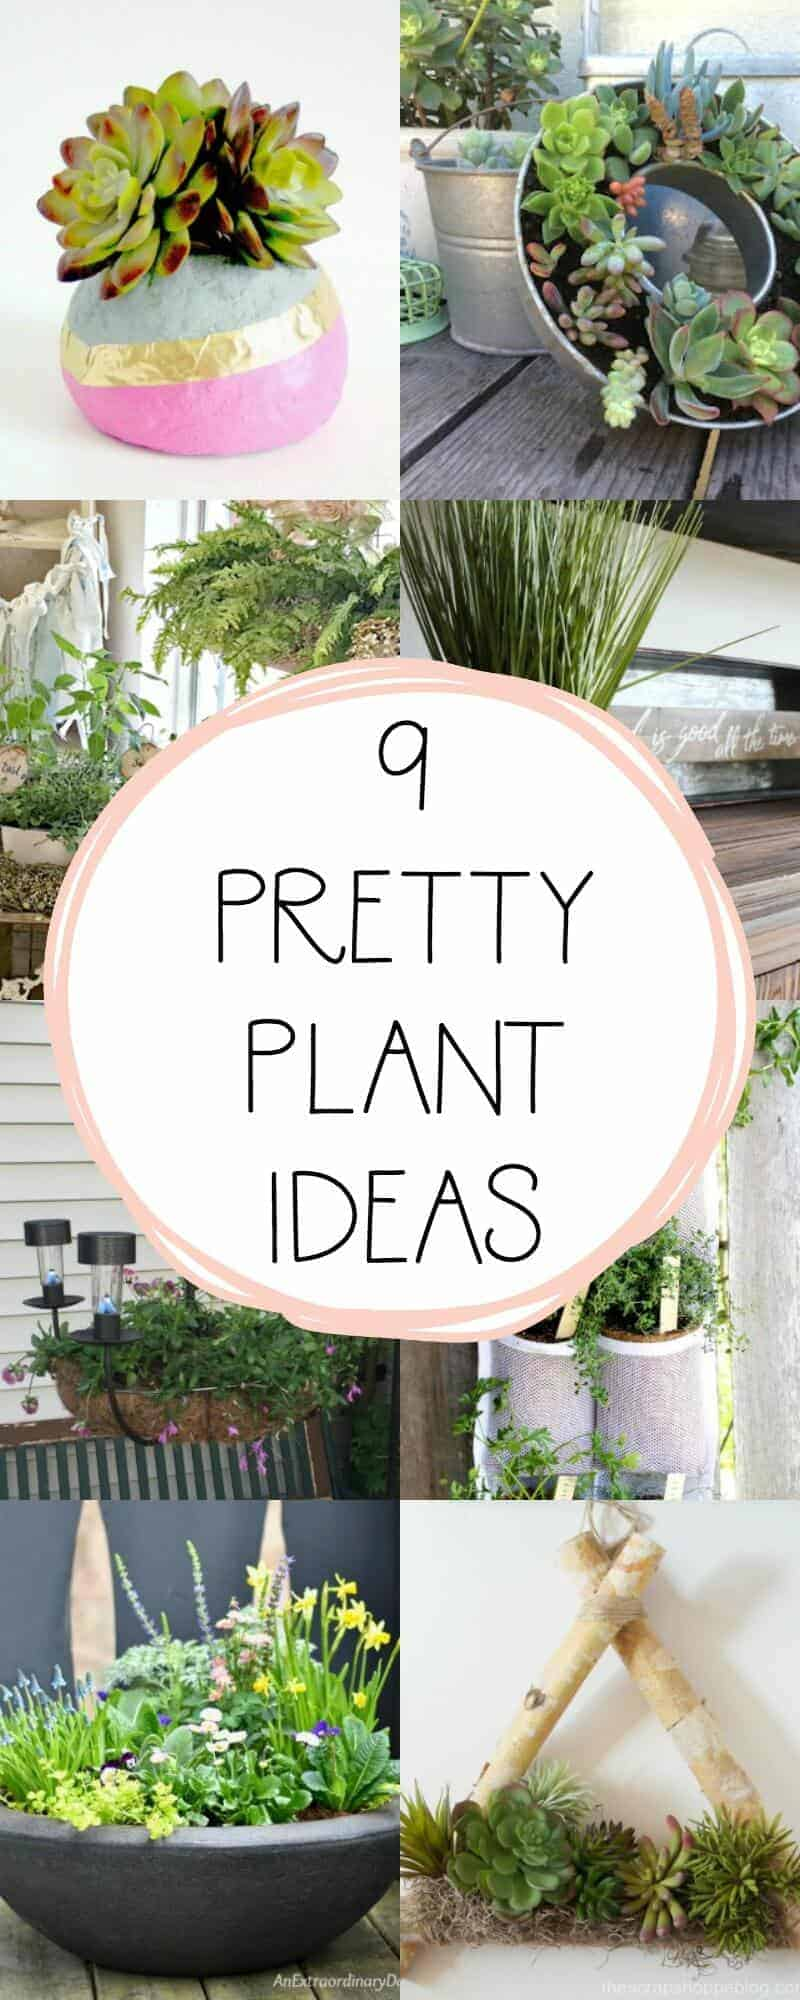 9 Pretty and Creative Plant Ideas | The How-To Home